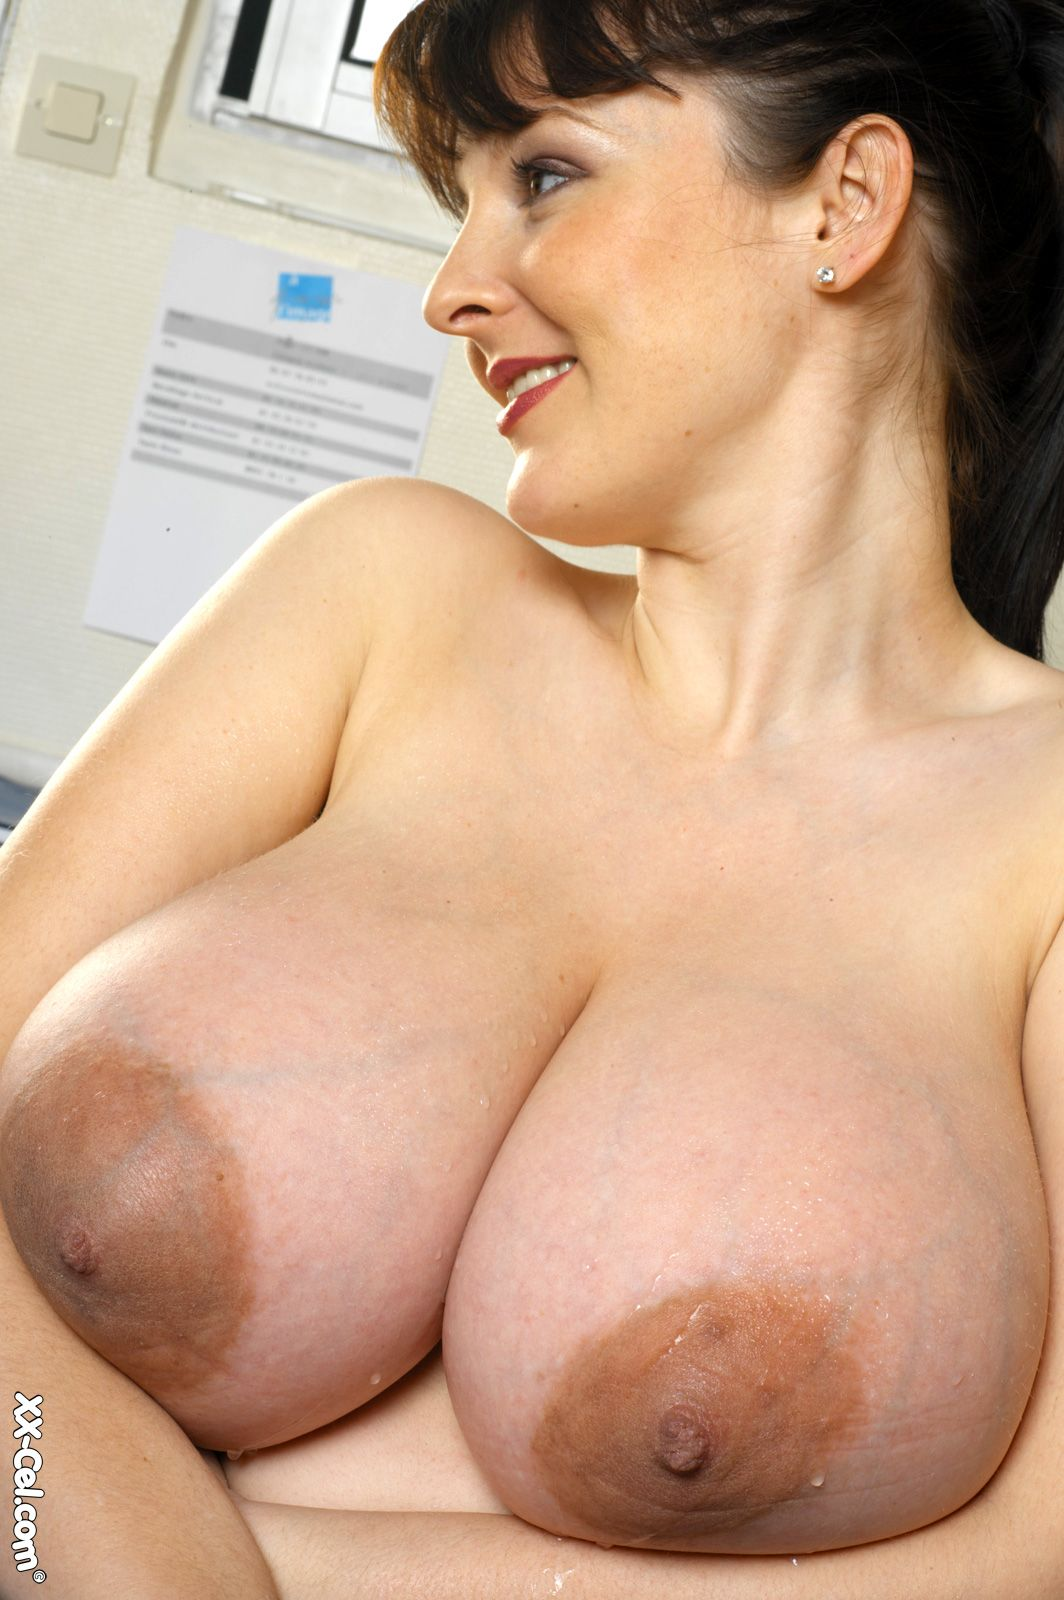 Woman with giant tits